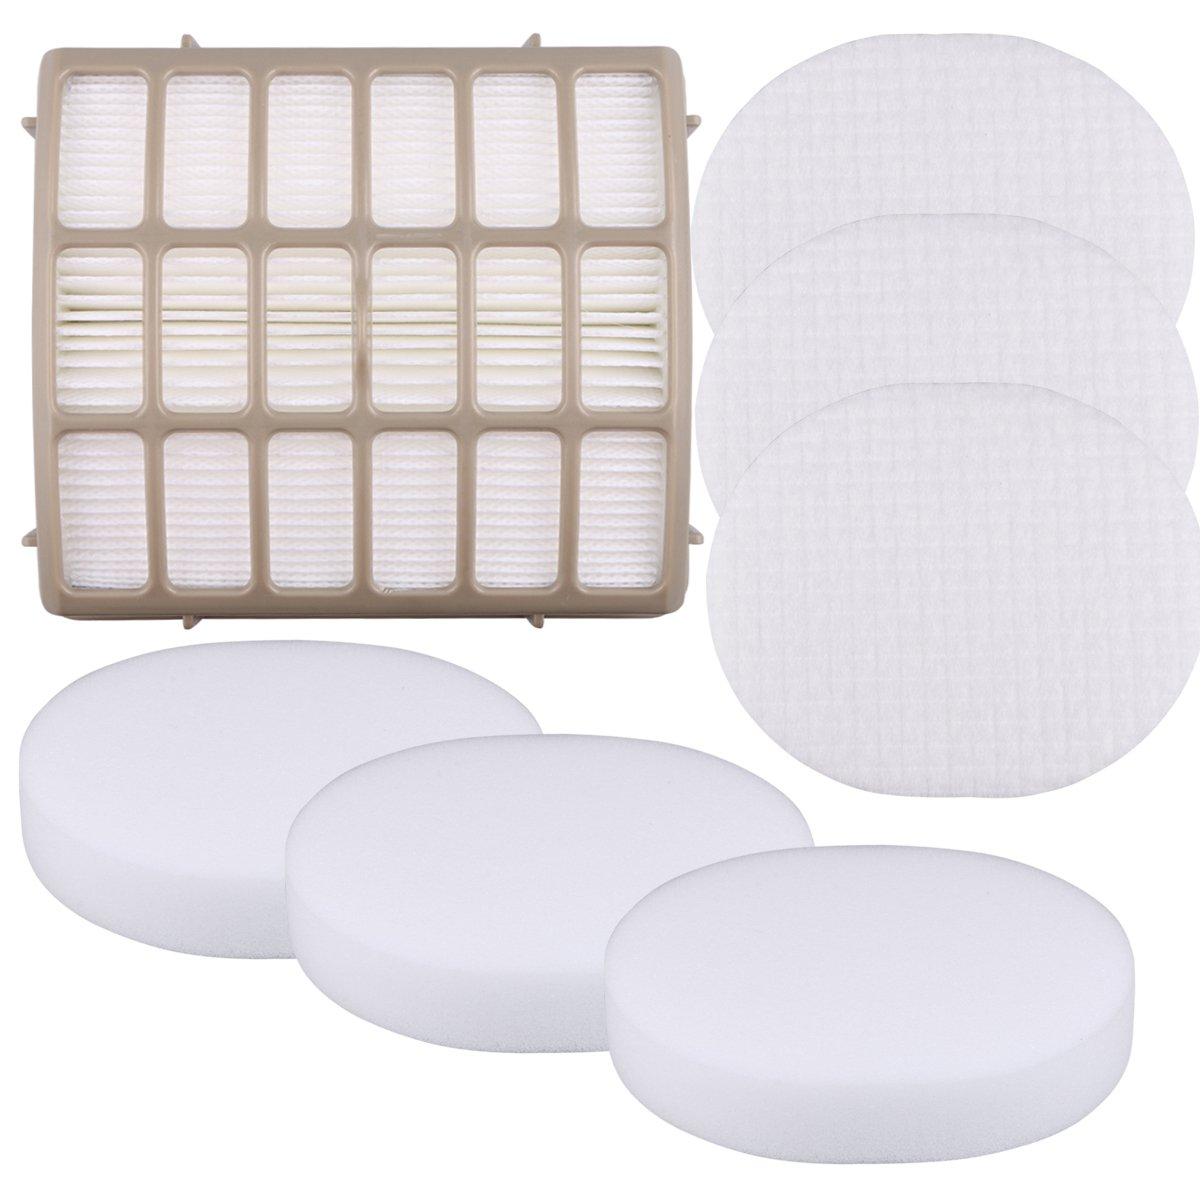 3 Foam Filters + 1 HEPA Replacement Vacuum Filter for Shark Navigator Professional NV70, NV80, NVC80C, UV420 Shark Rotator Professional XL Capacity NV90 Replacement Parts XFF80 XHF80, Aunifun